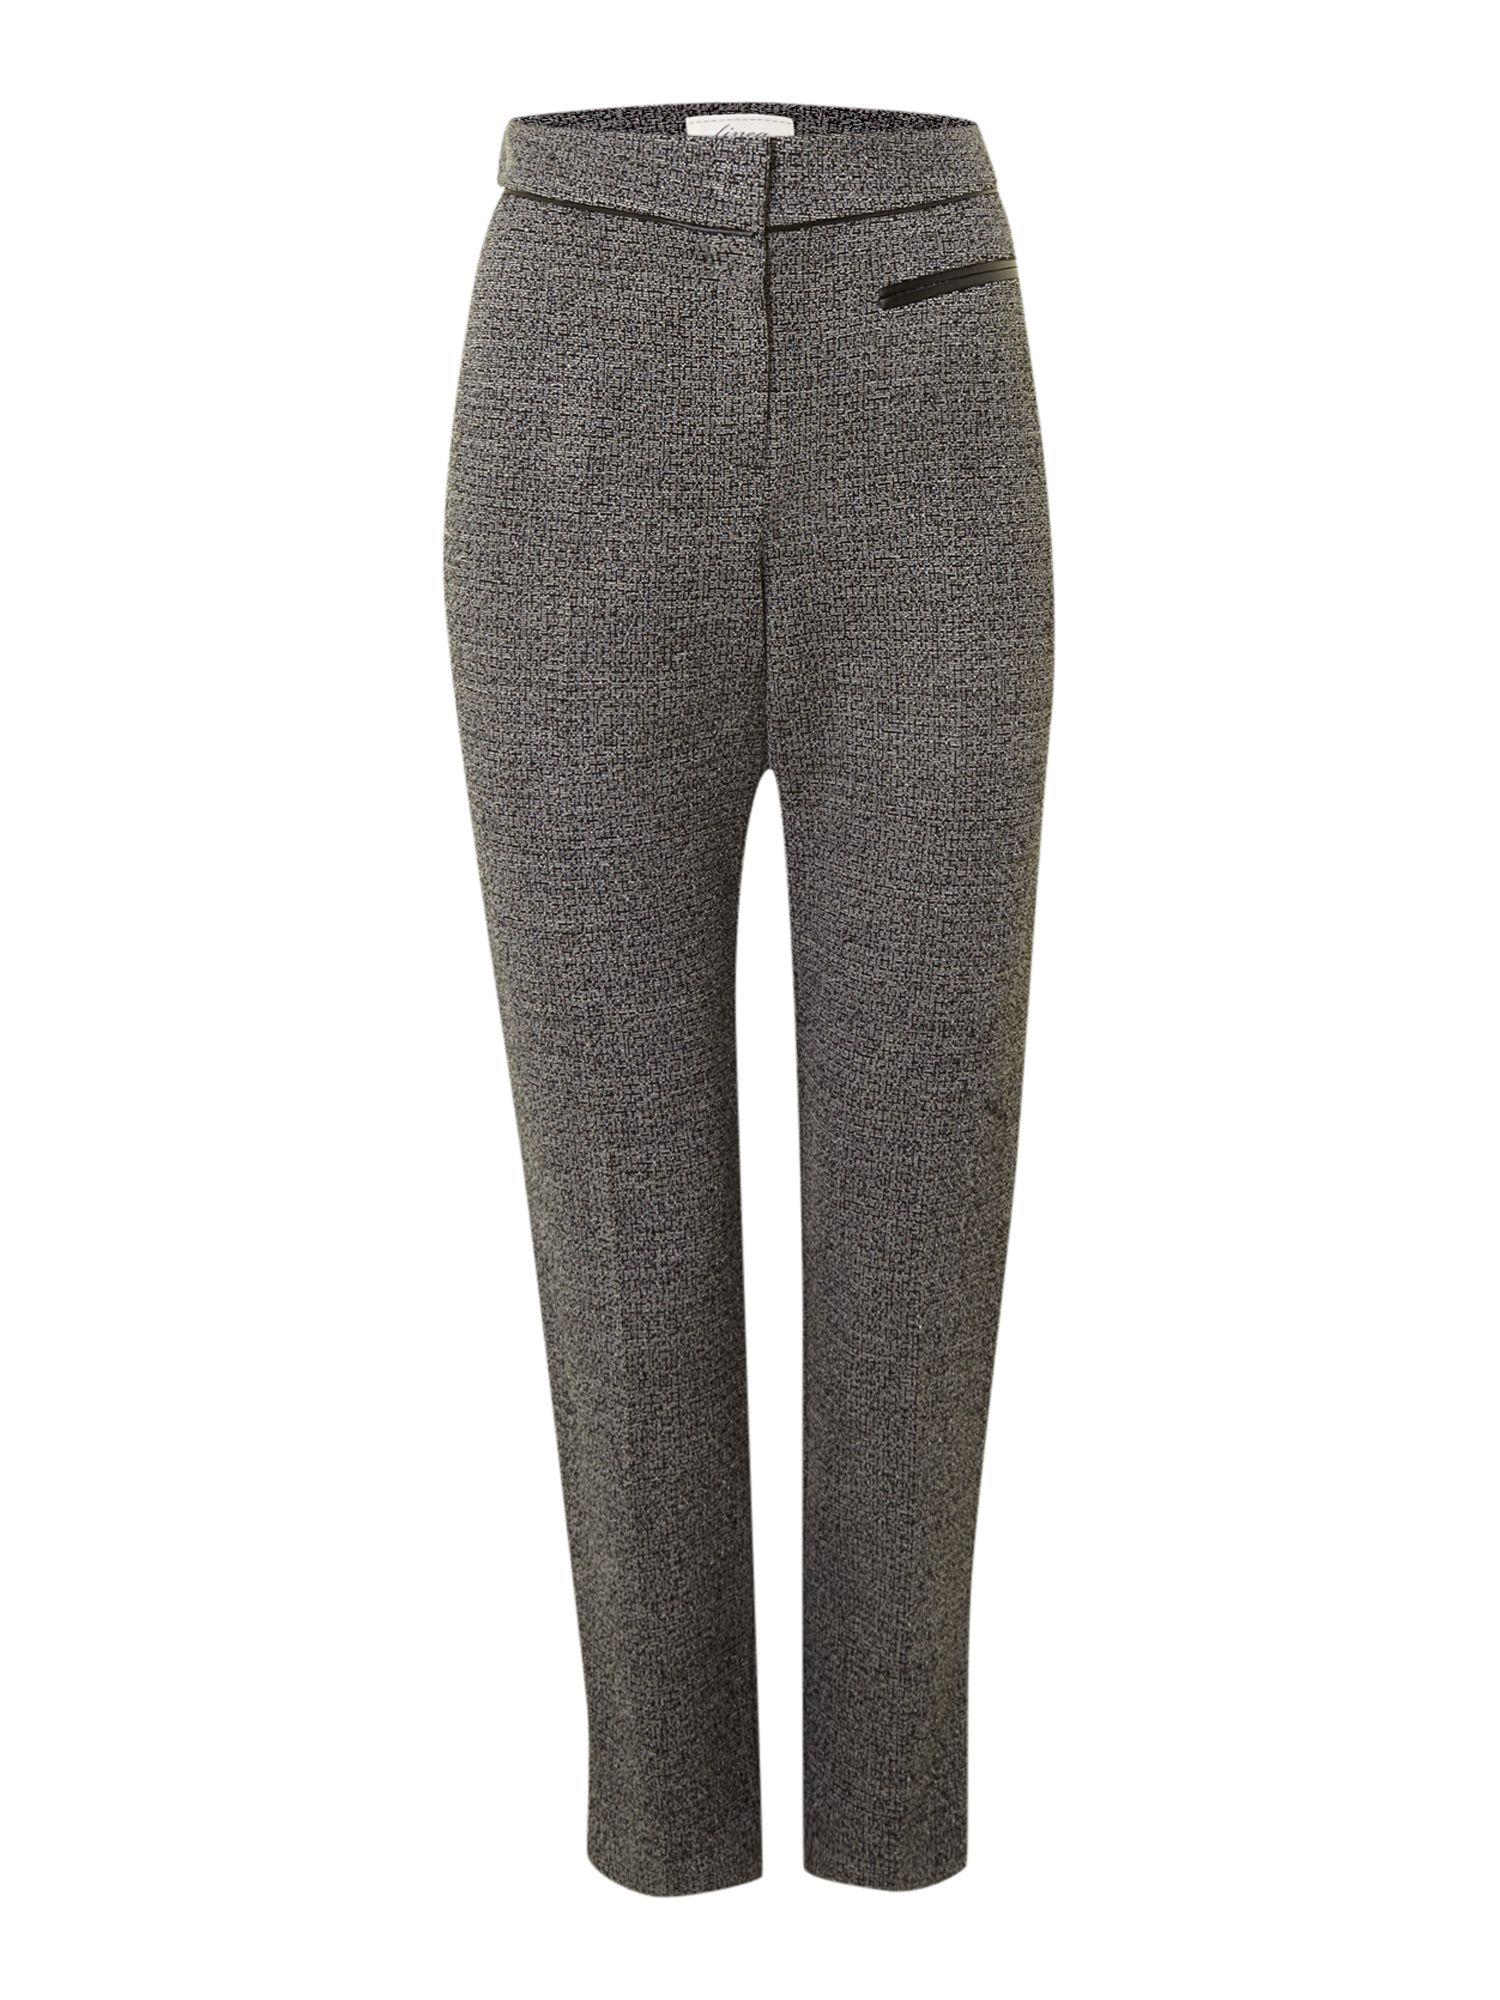 Tweedy ponte trouser